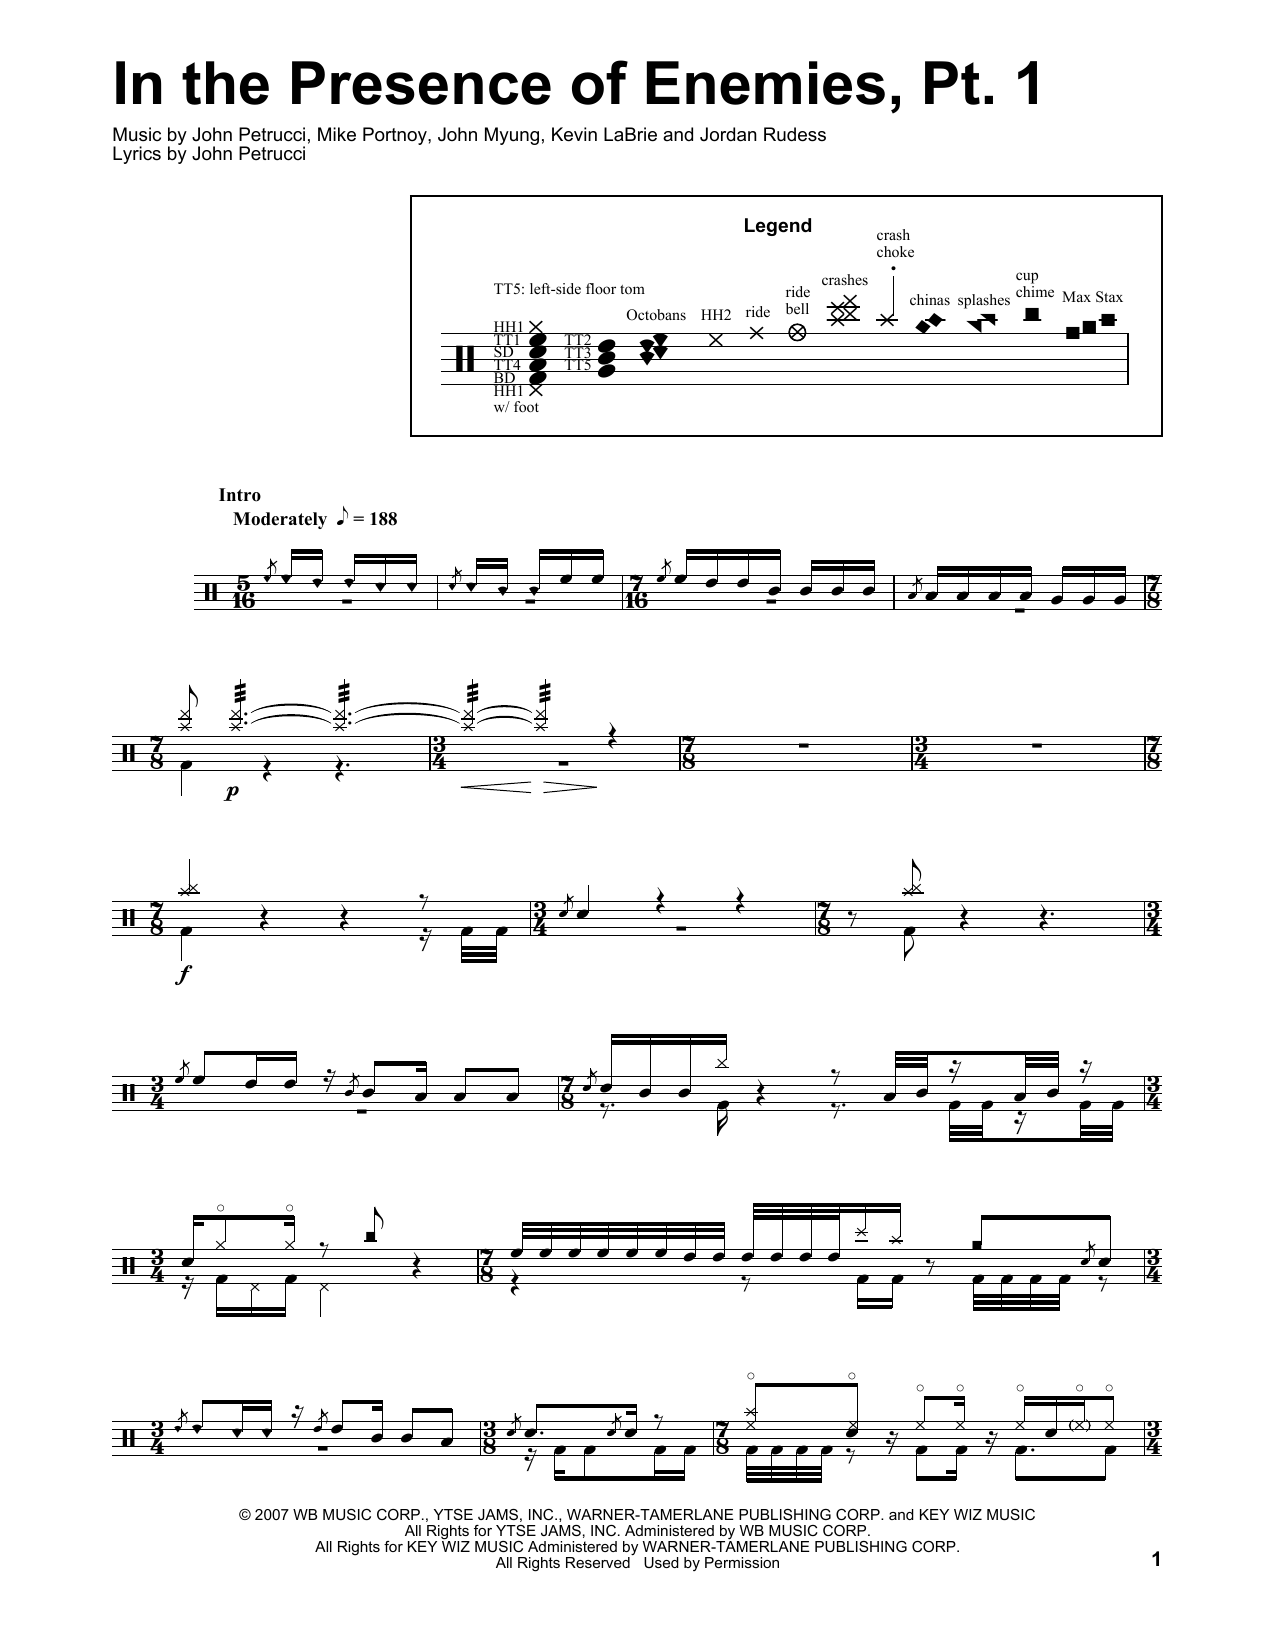 In The Presence Of Enemies - Part 1 Sheet Music